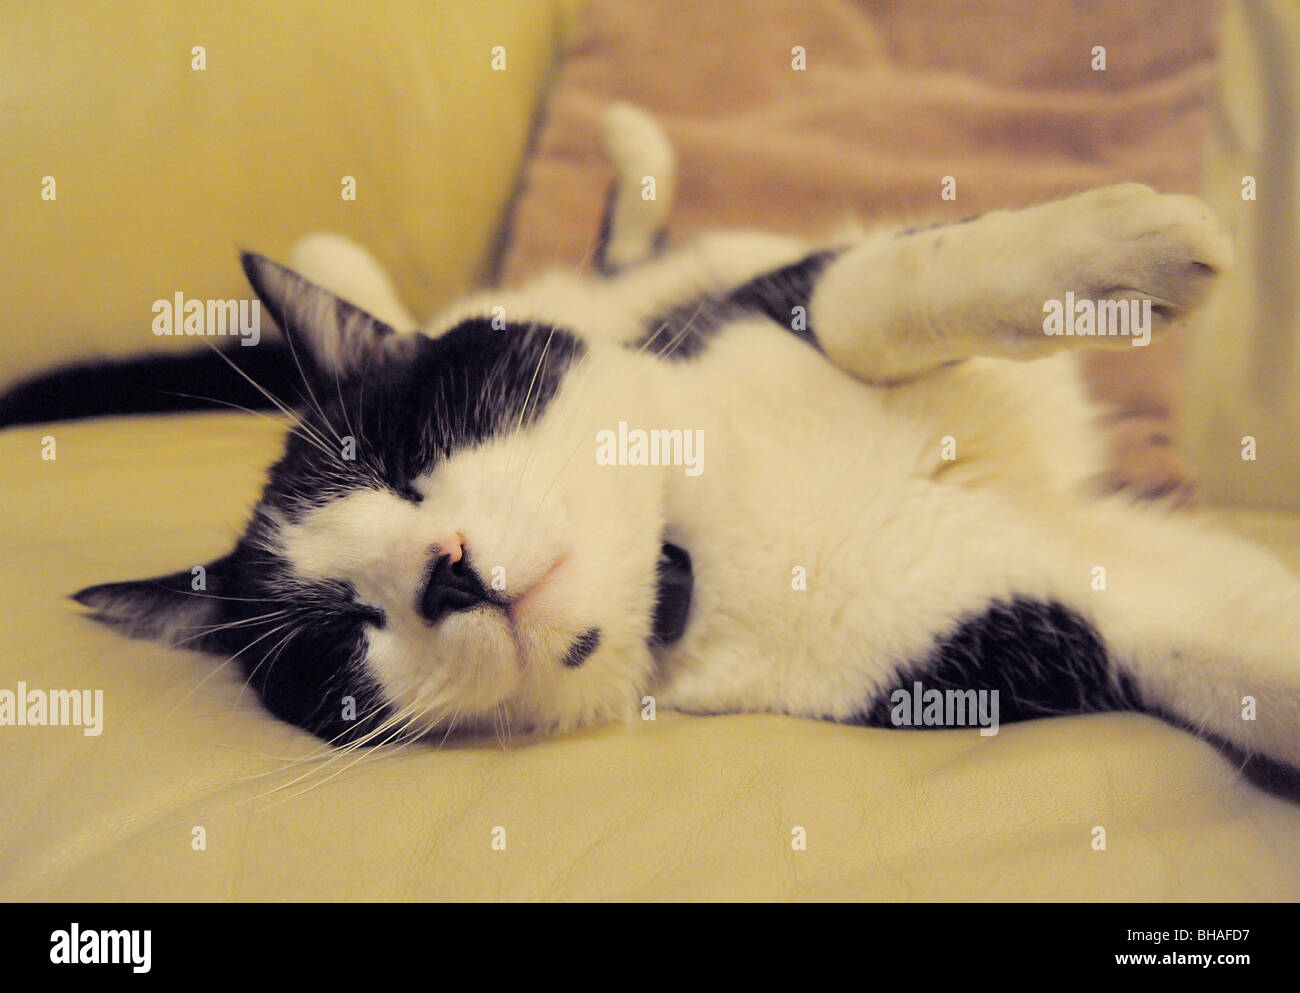 Funny animals Felix the black and white cat sleeping - Stock Image